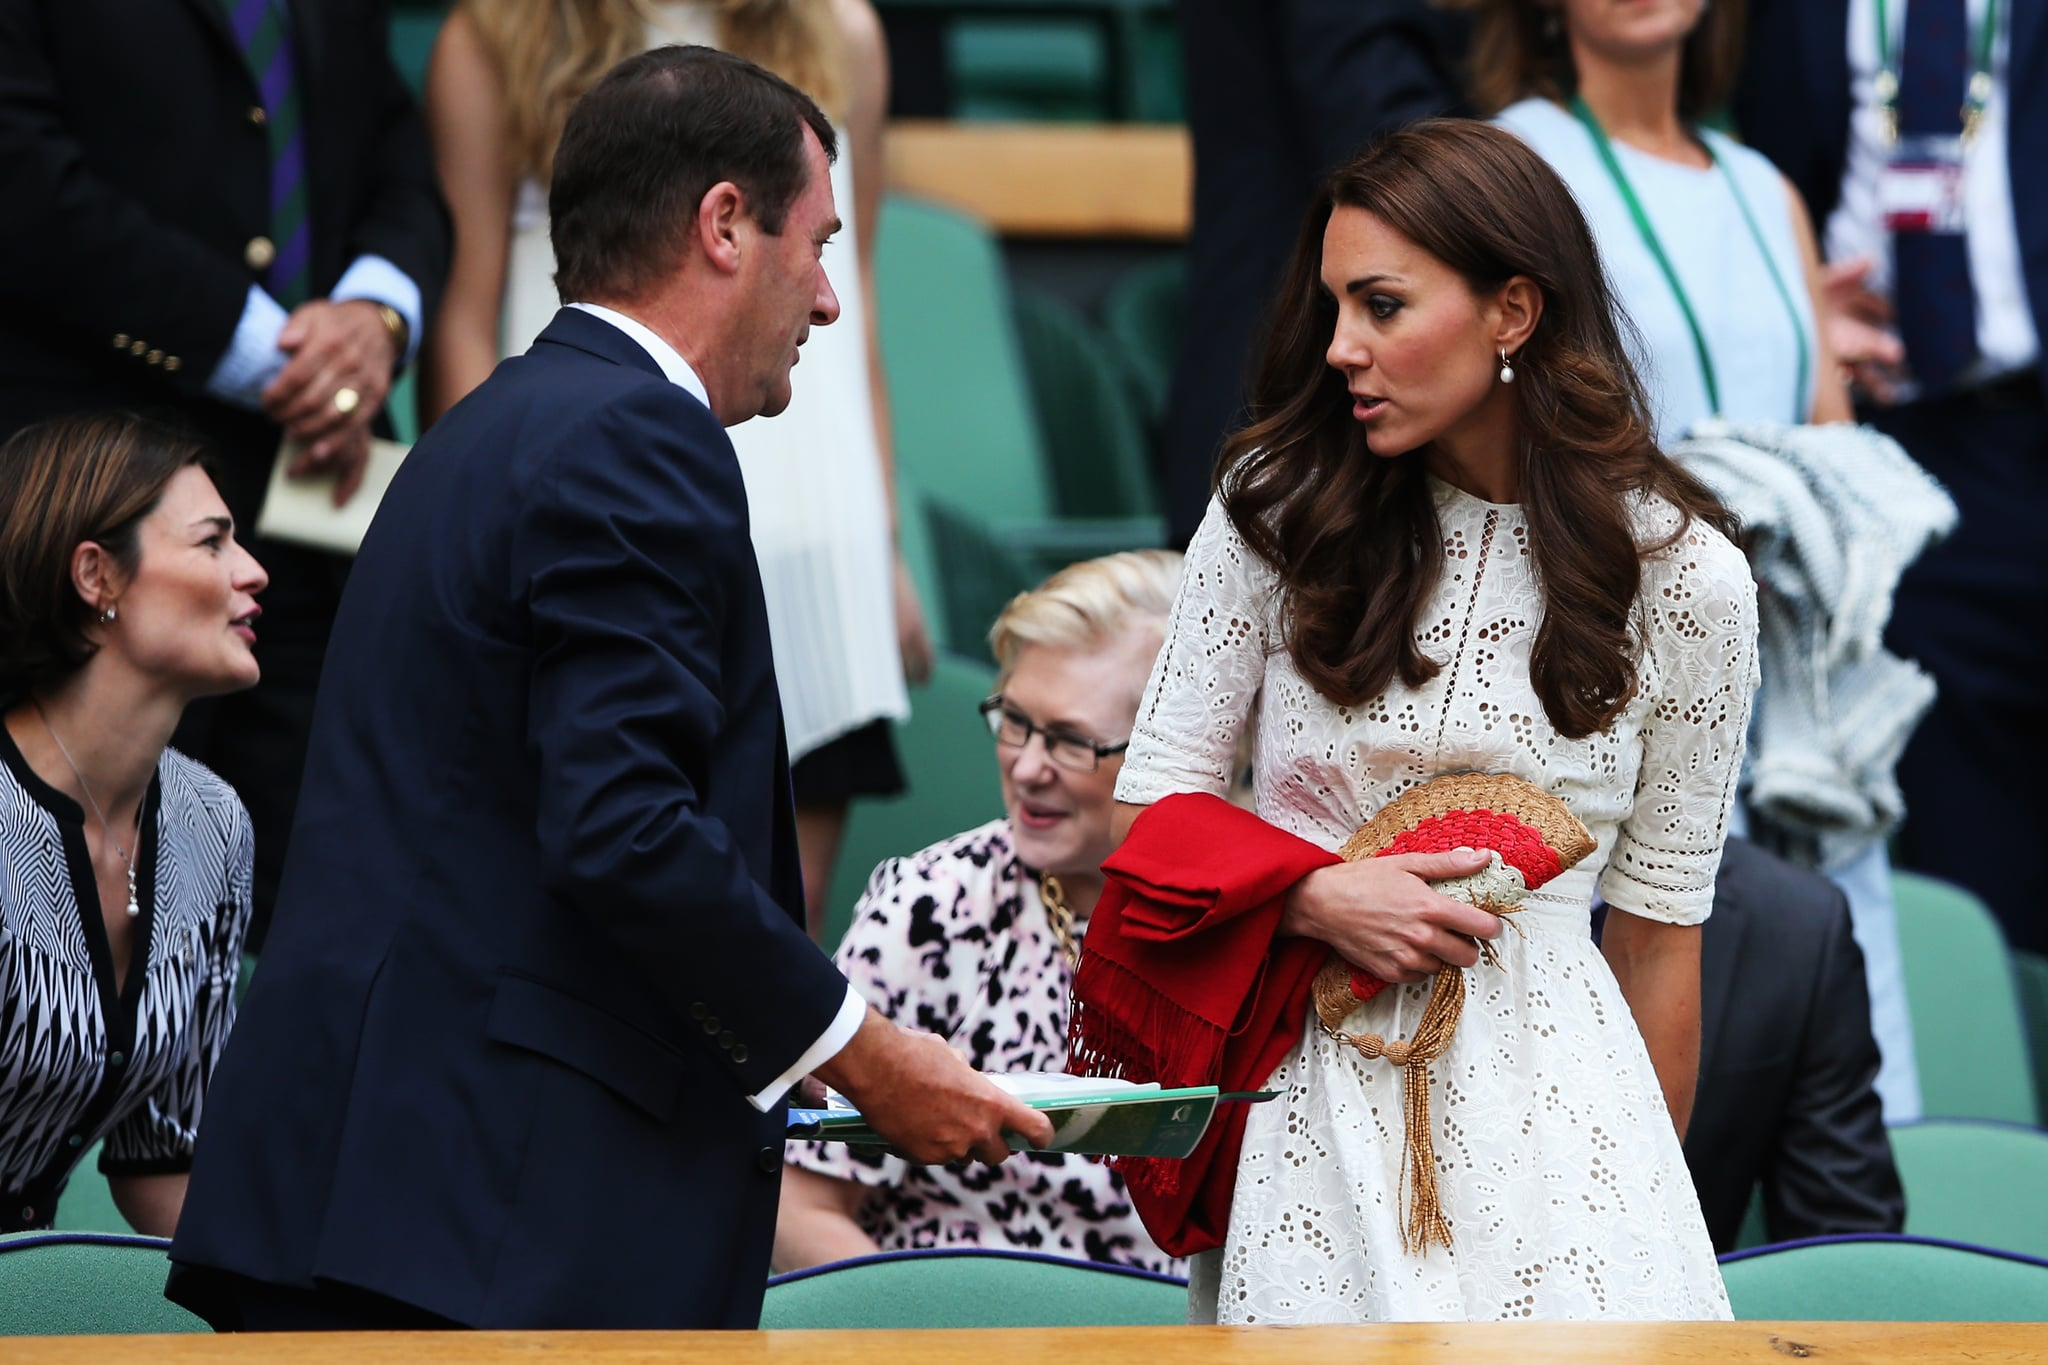 Kate Middleton and Prince William Take Wimbledon Very Seriously